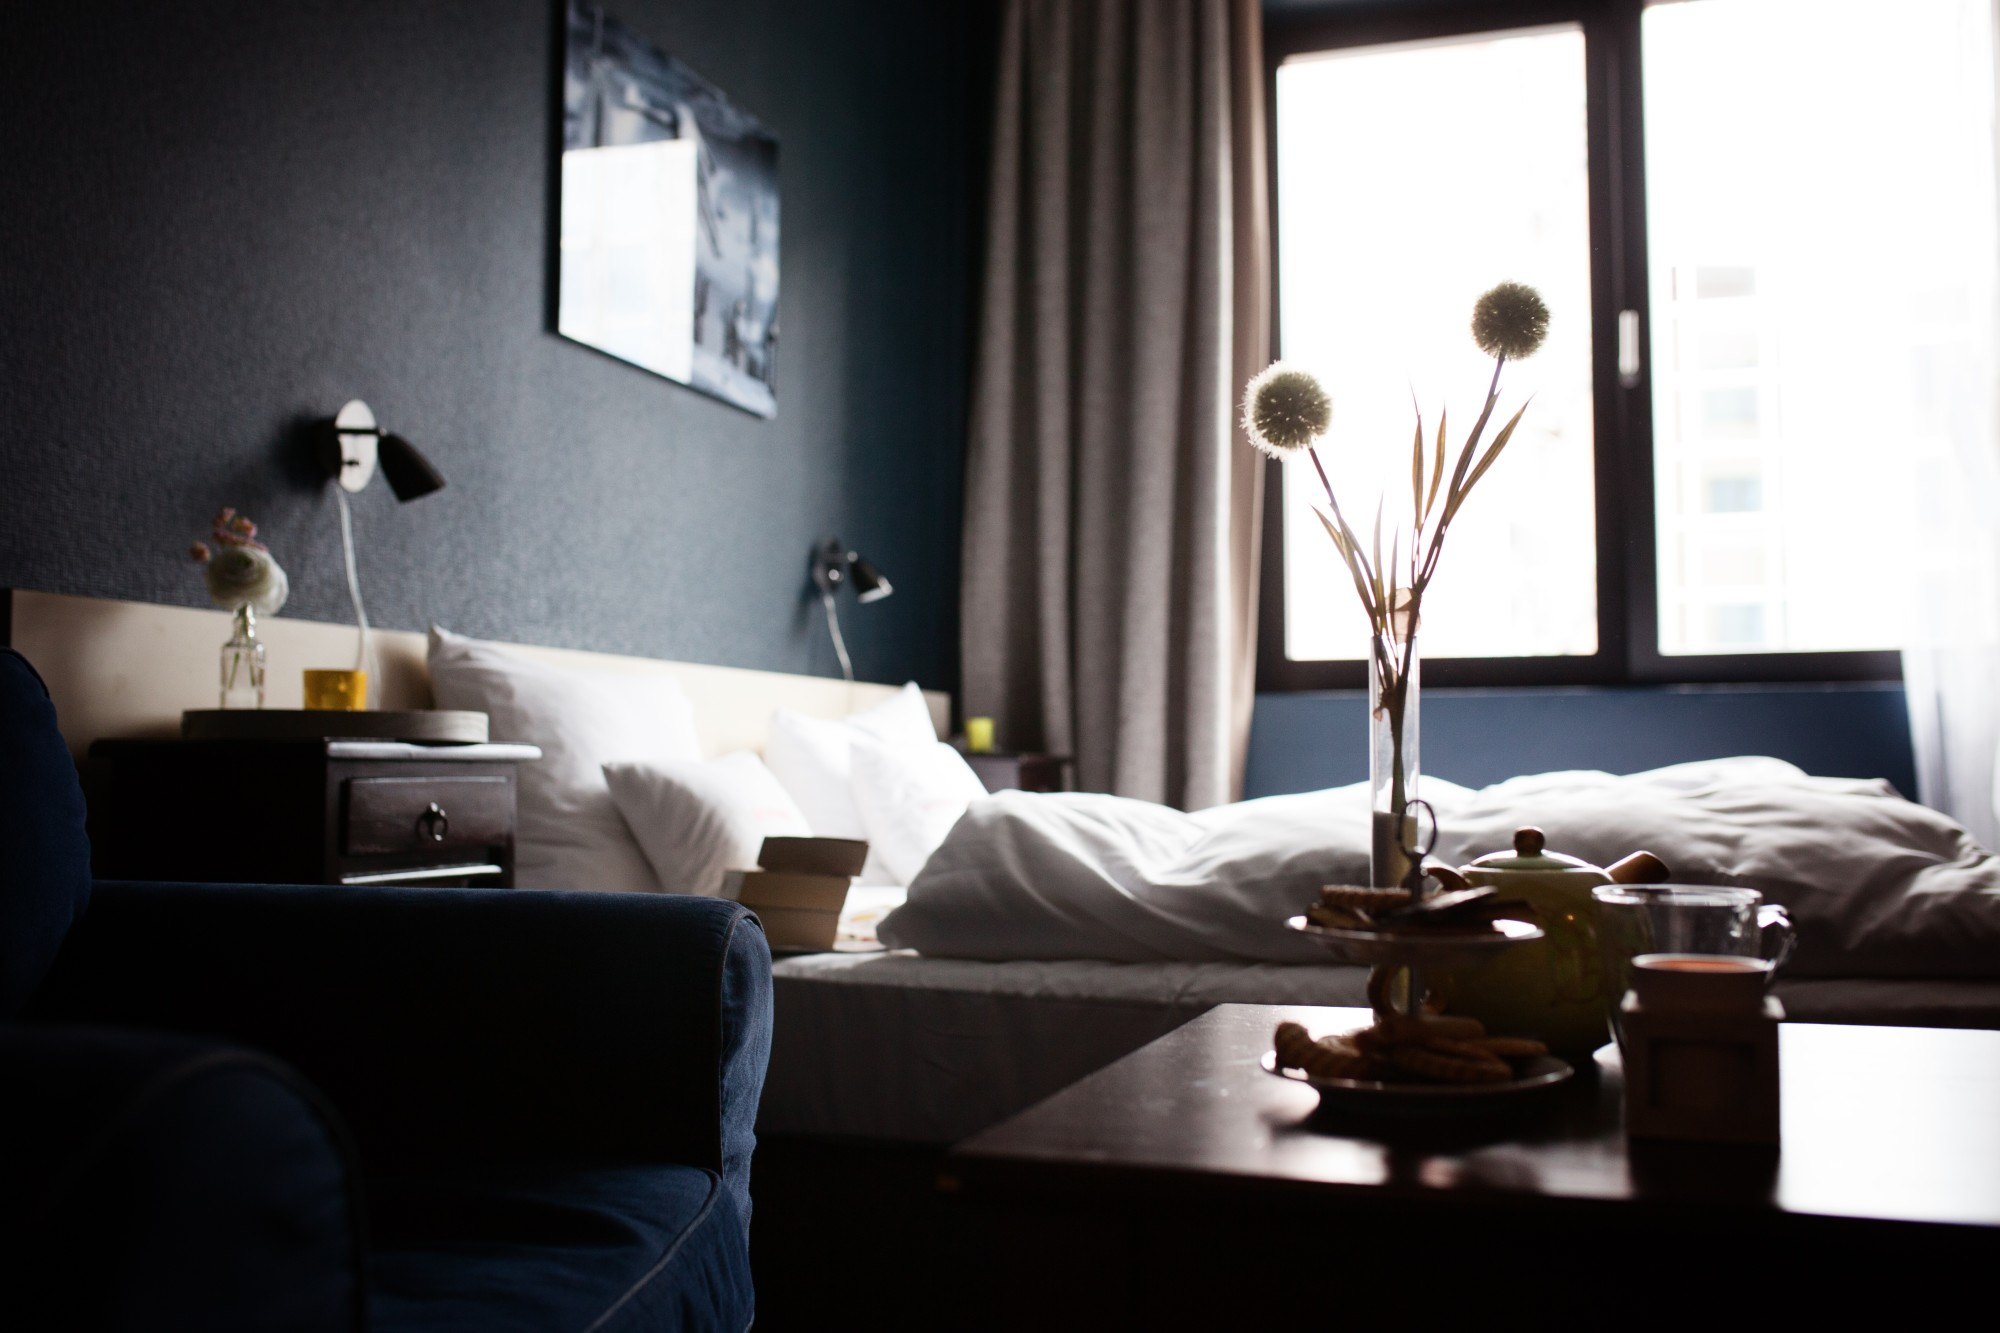 6 Things to Look for in a Extended Stay Hotel